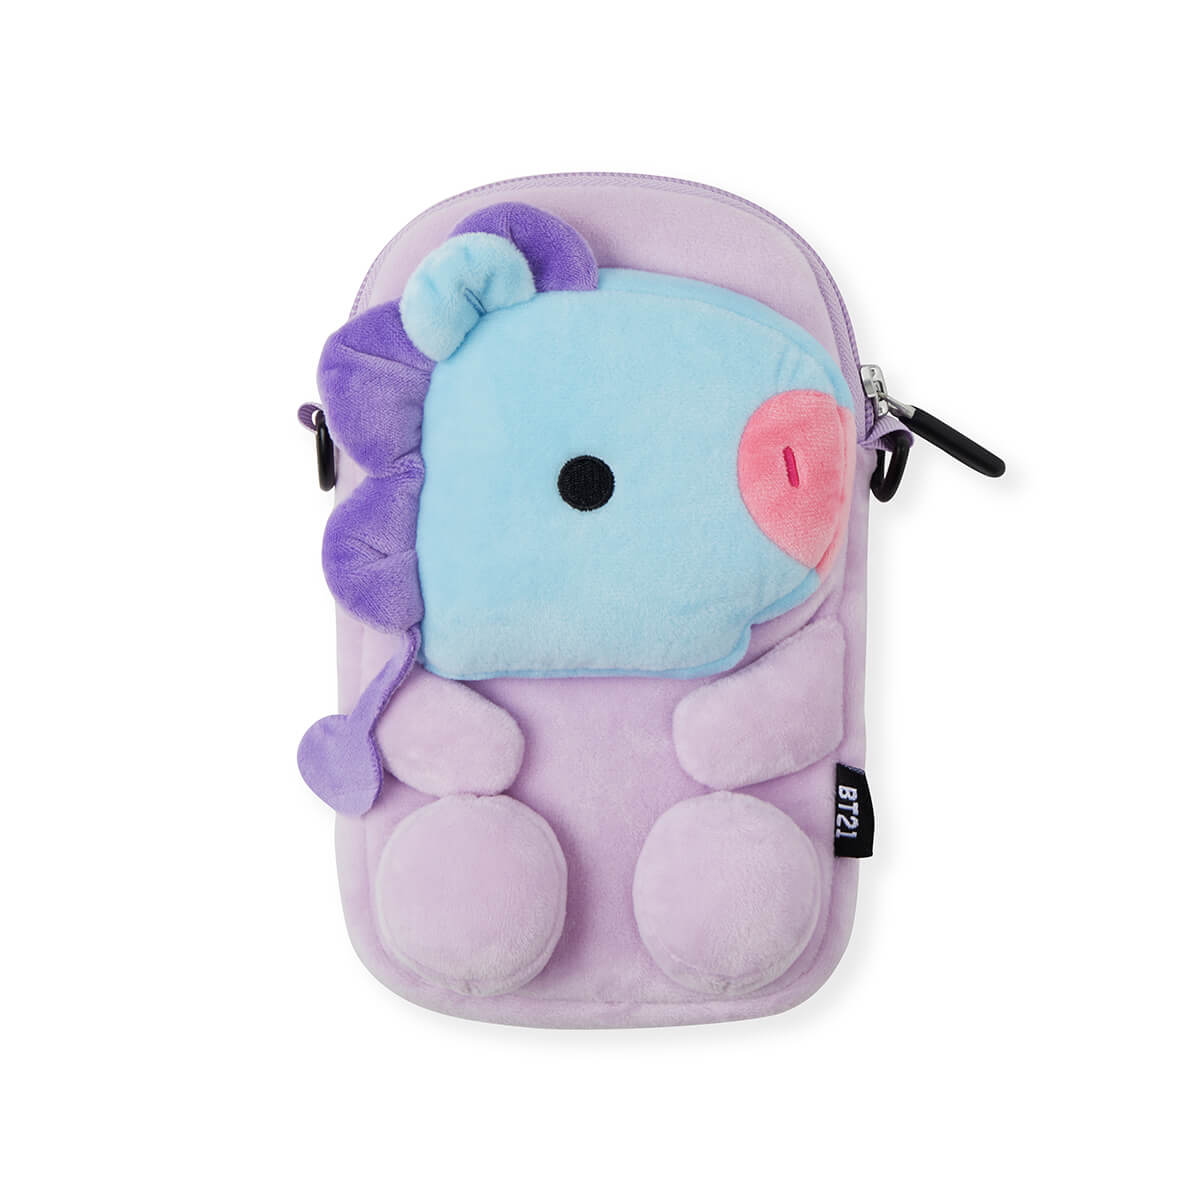 BT21 MANG Baby Plush Cross Bag